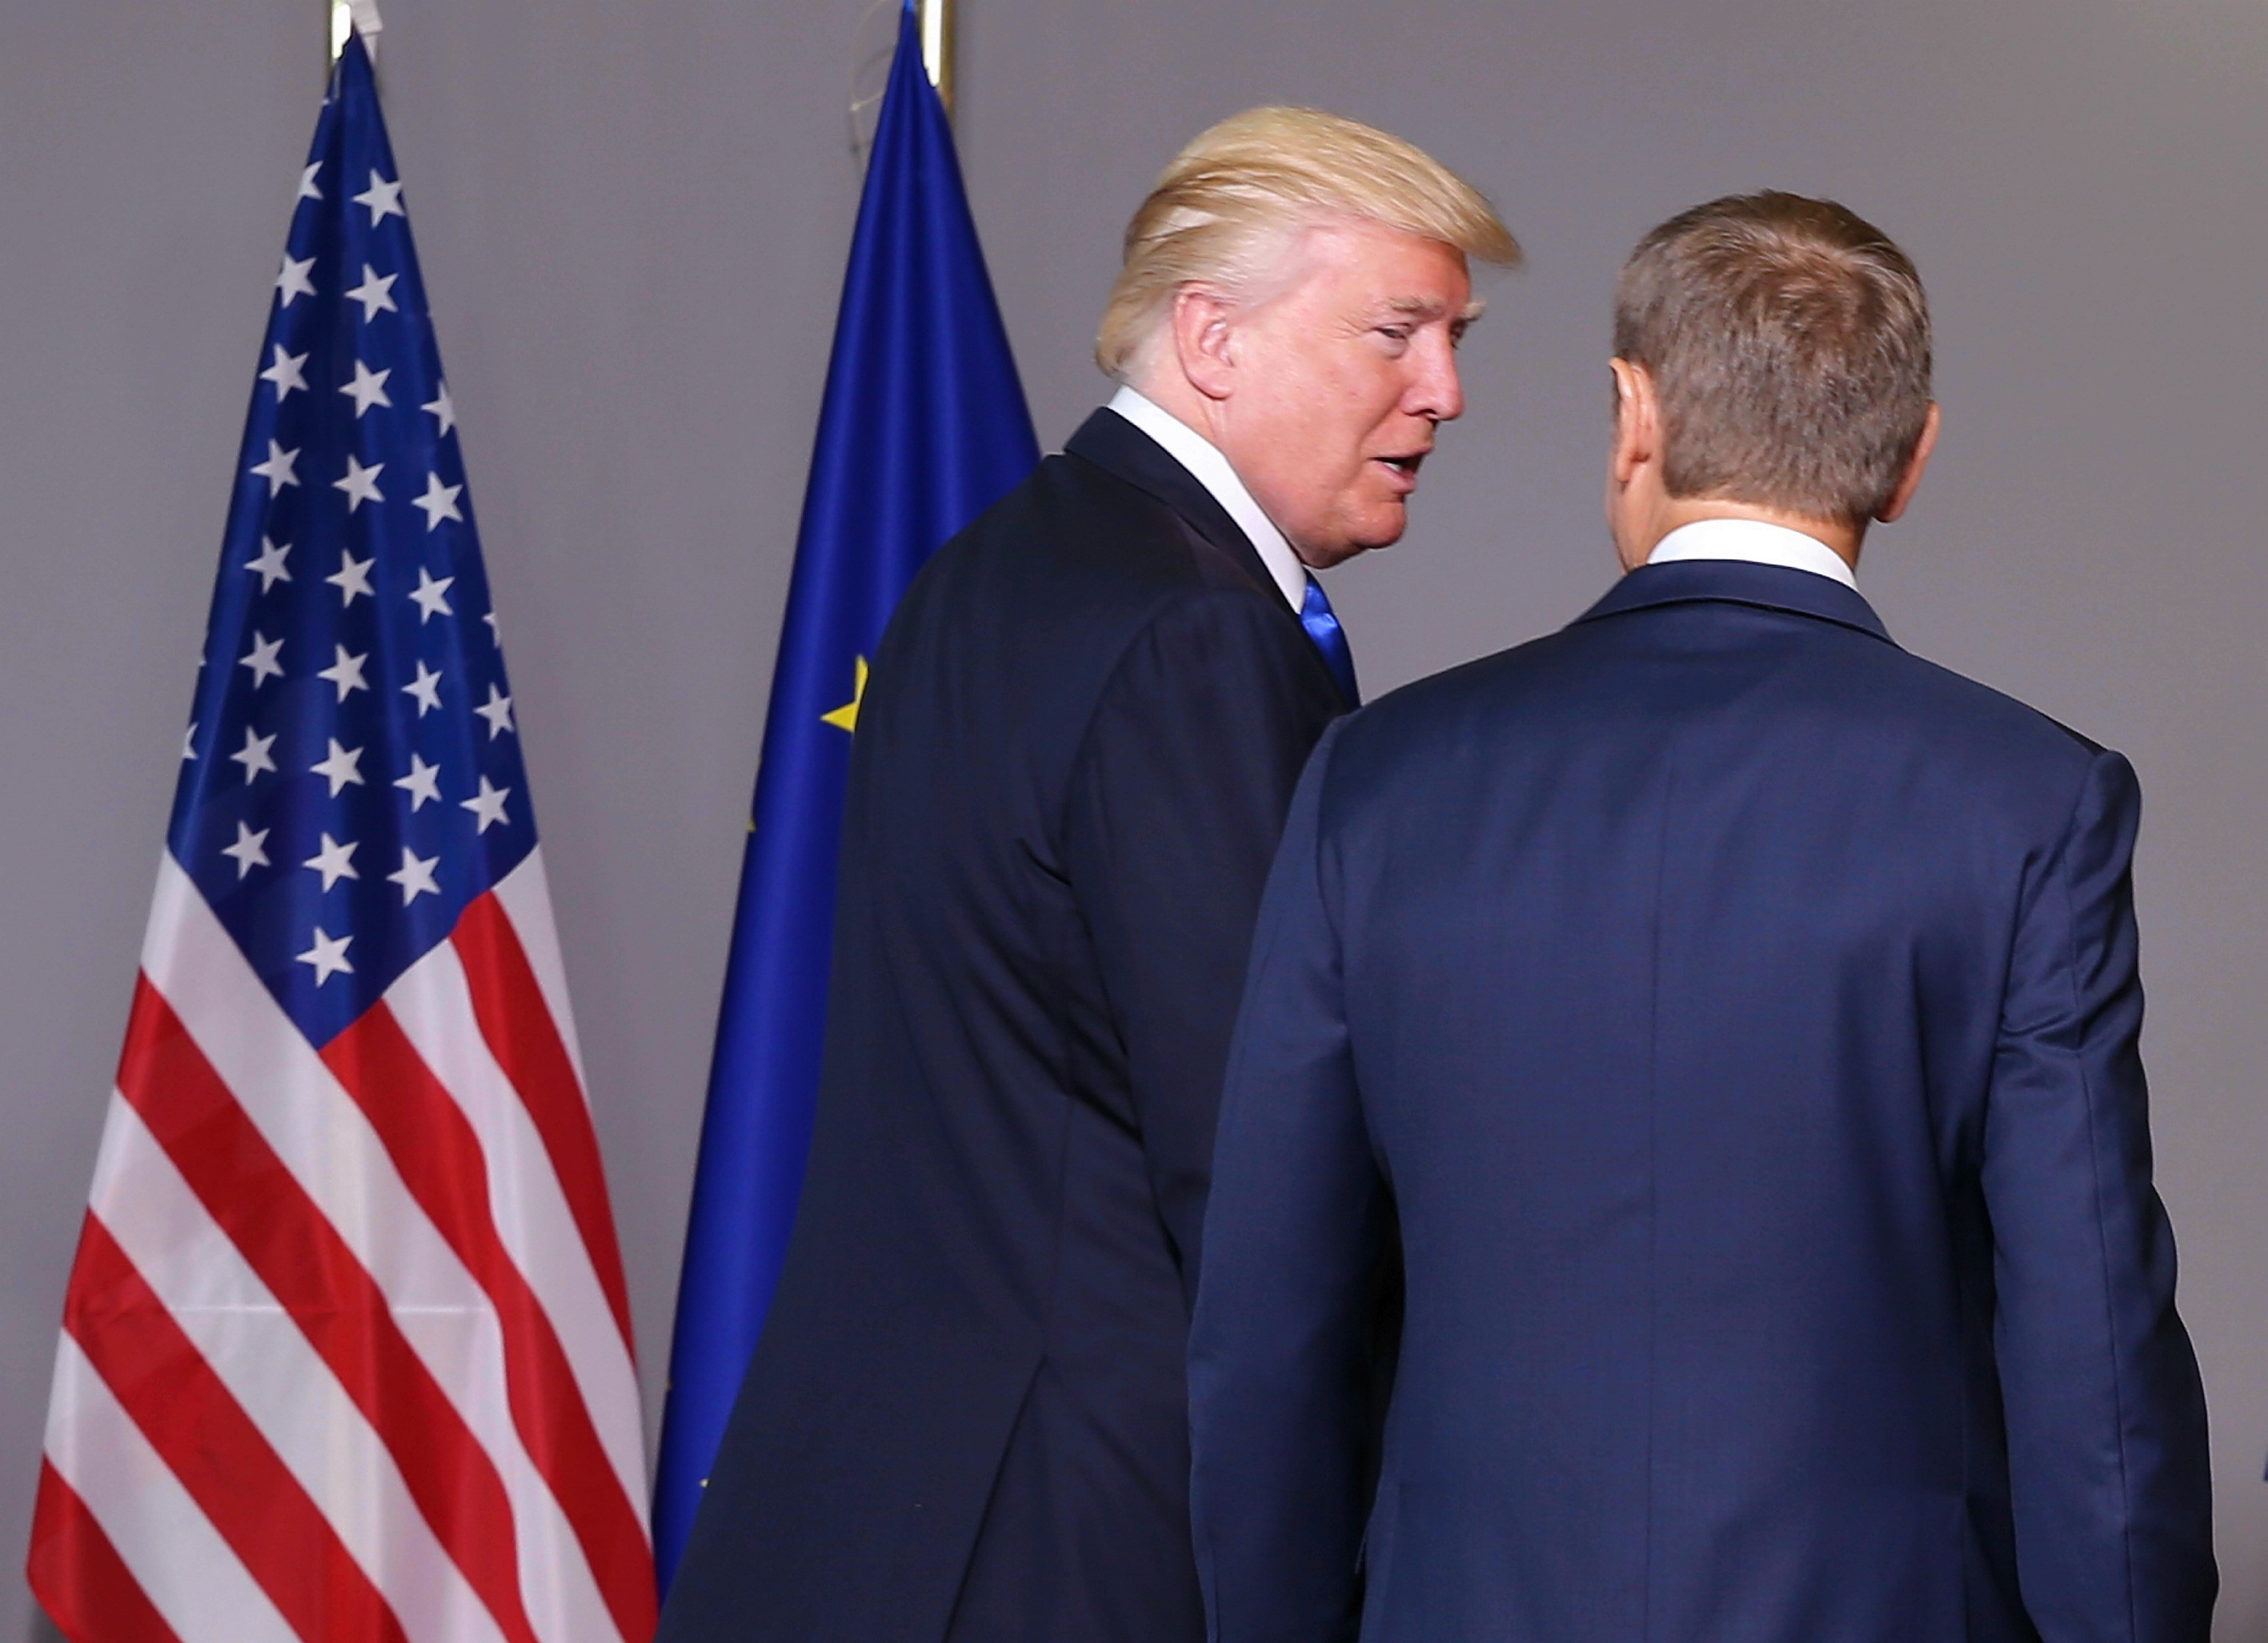 Donald Trump - Donald Tusk in Brussels